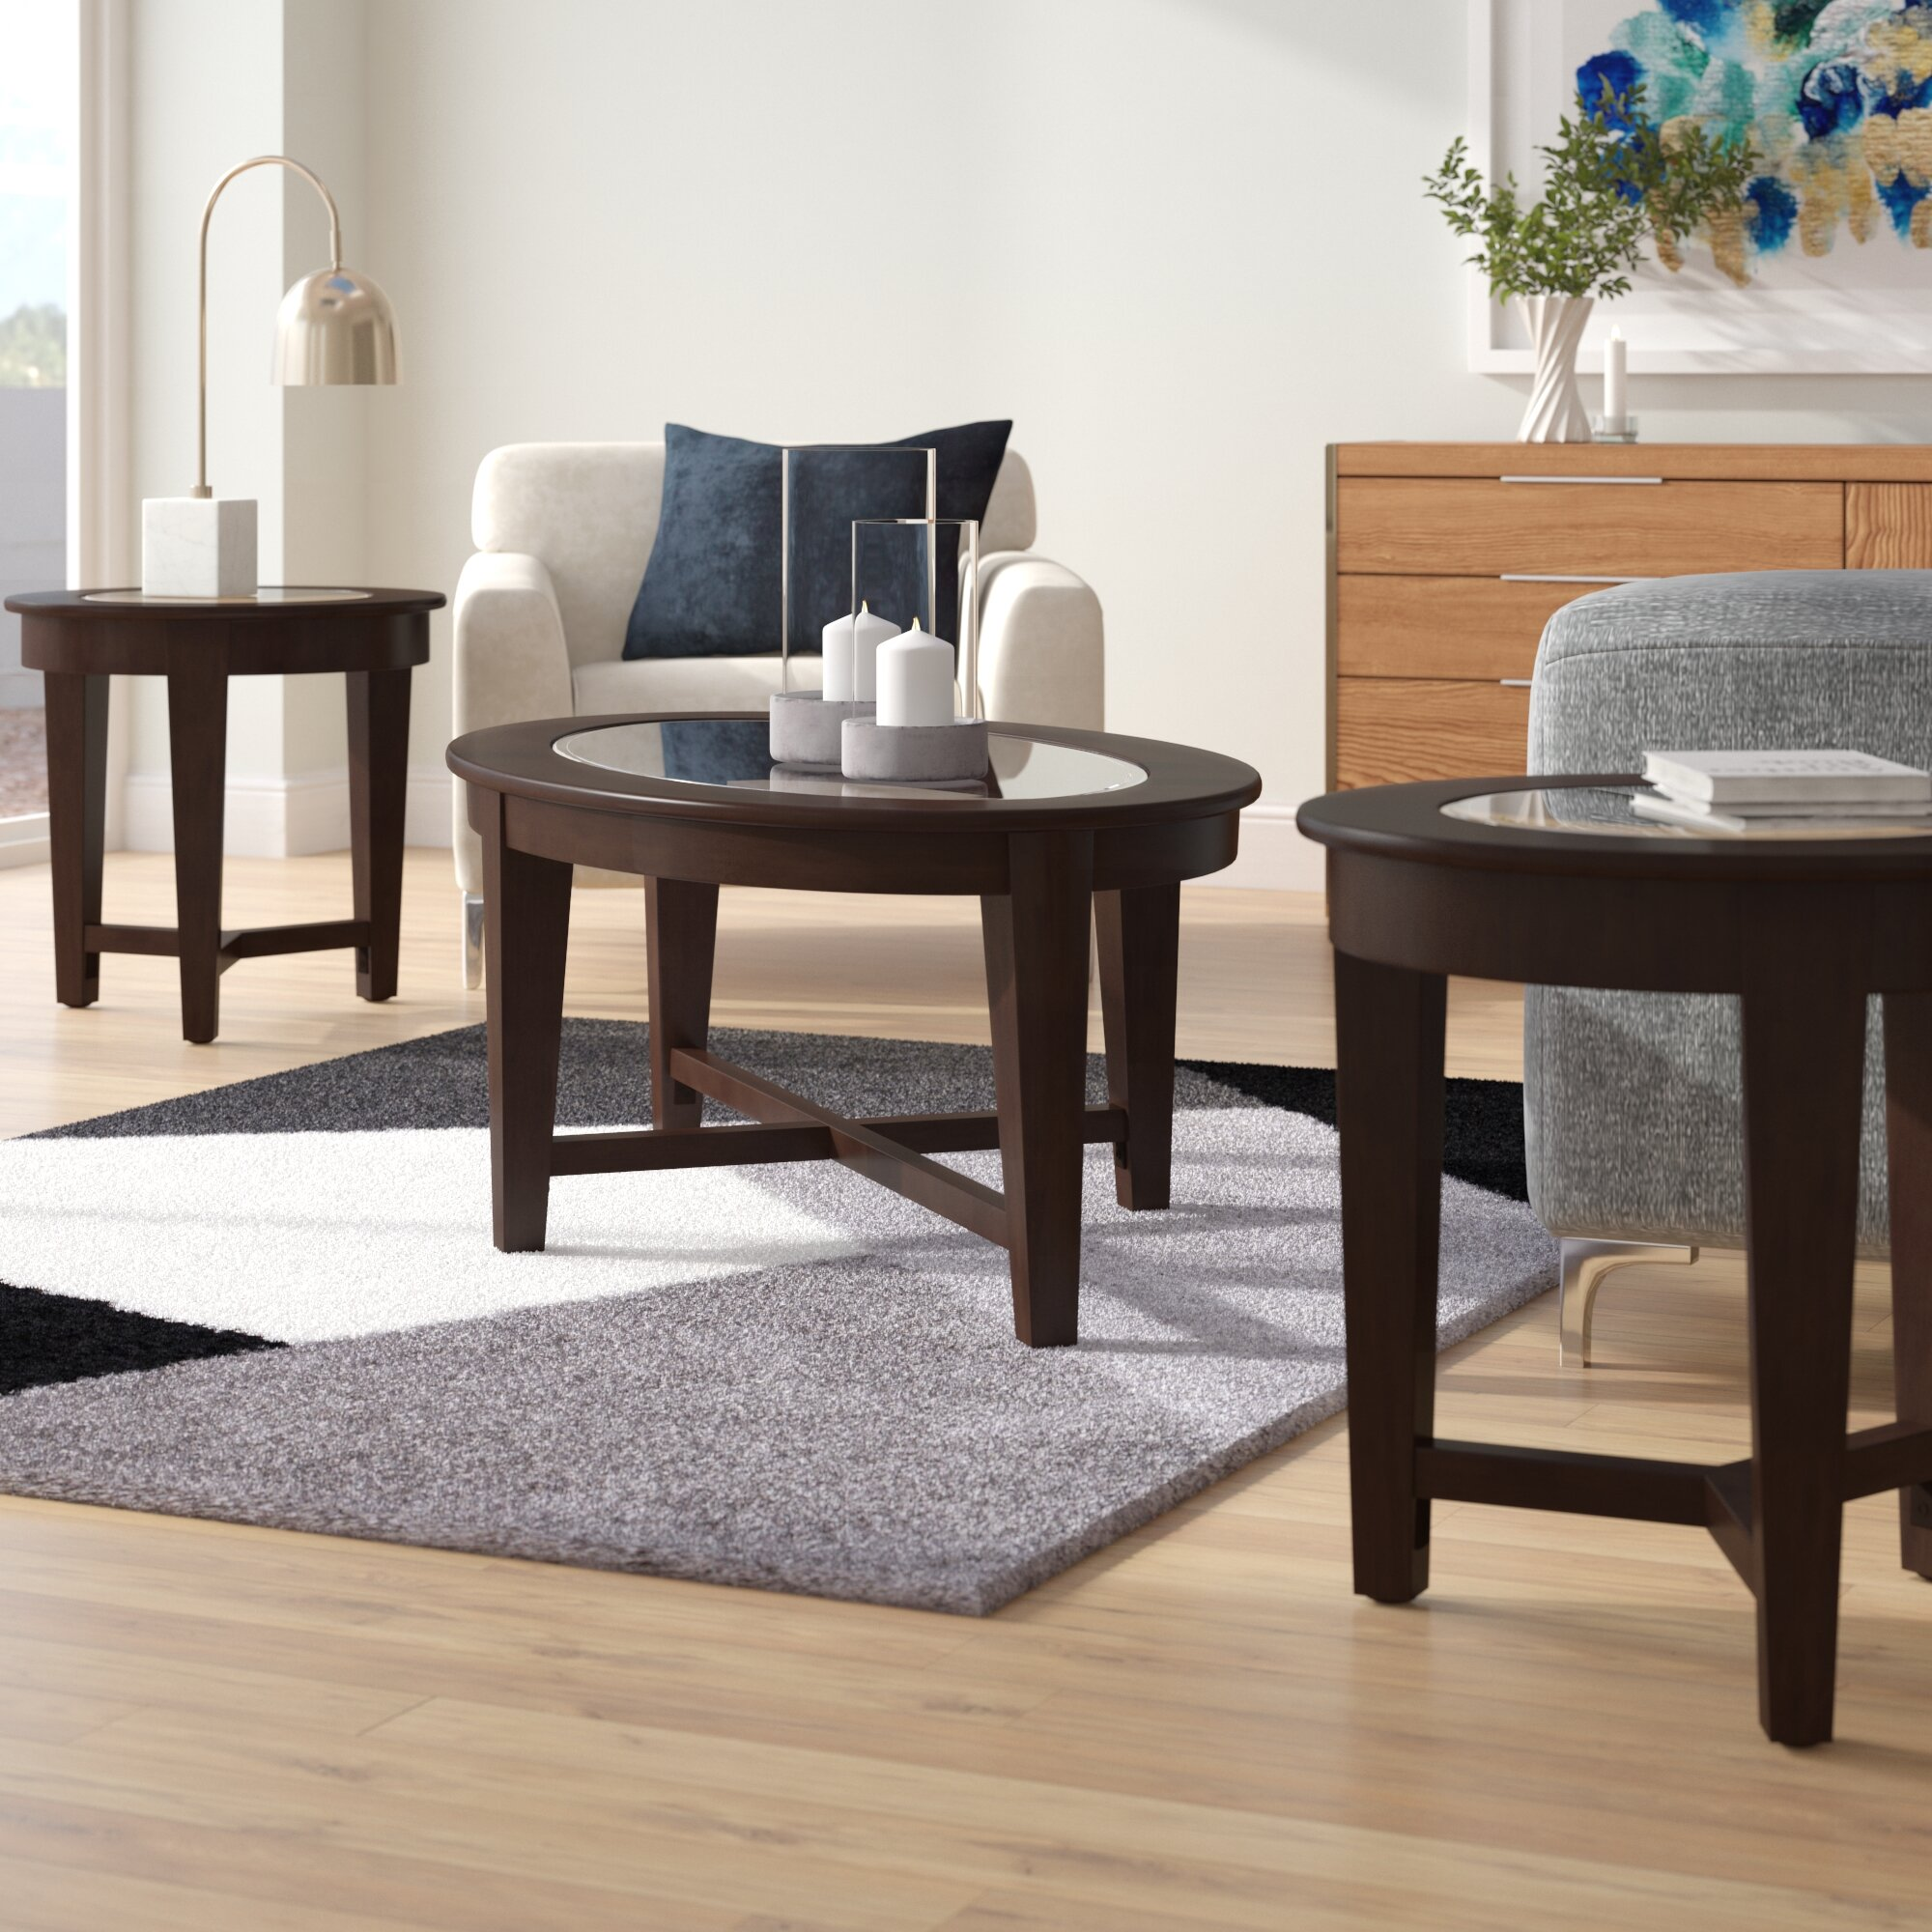 Latitude Run Jalbert 3 Piece Coffee Table Set Reviews Wayfair